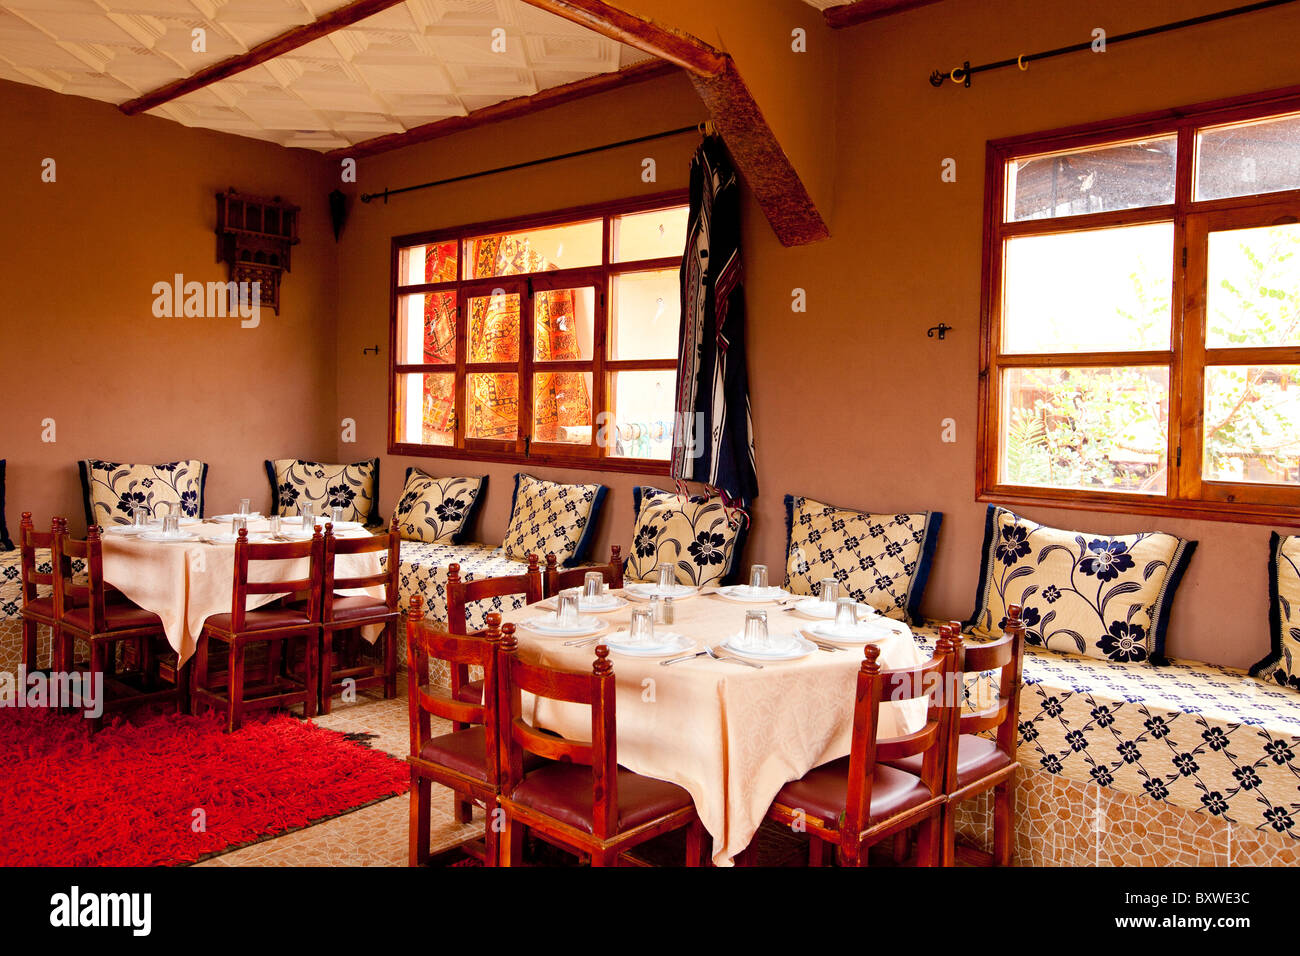 Interior Architecture And Furnishing Of A Moroccan Restaurant Near Stock Photo Alamy